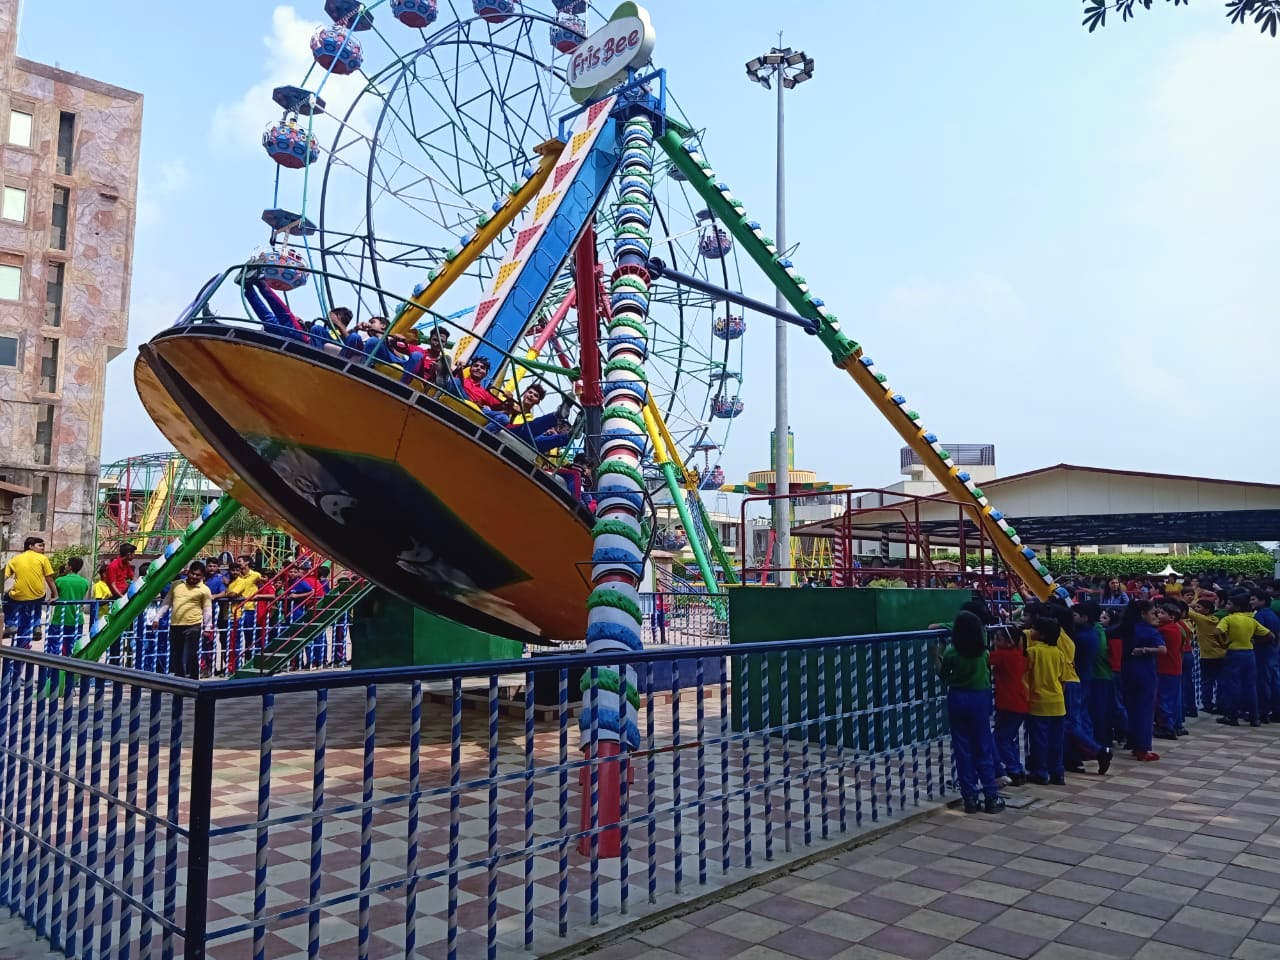 Amusement ride,Amusement park,Fun,Recreation,Fair,Park,Leisure,Tourist attraction,Nonbuilding structure,Event